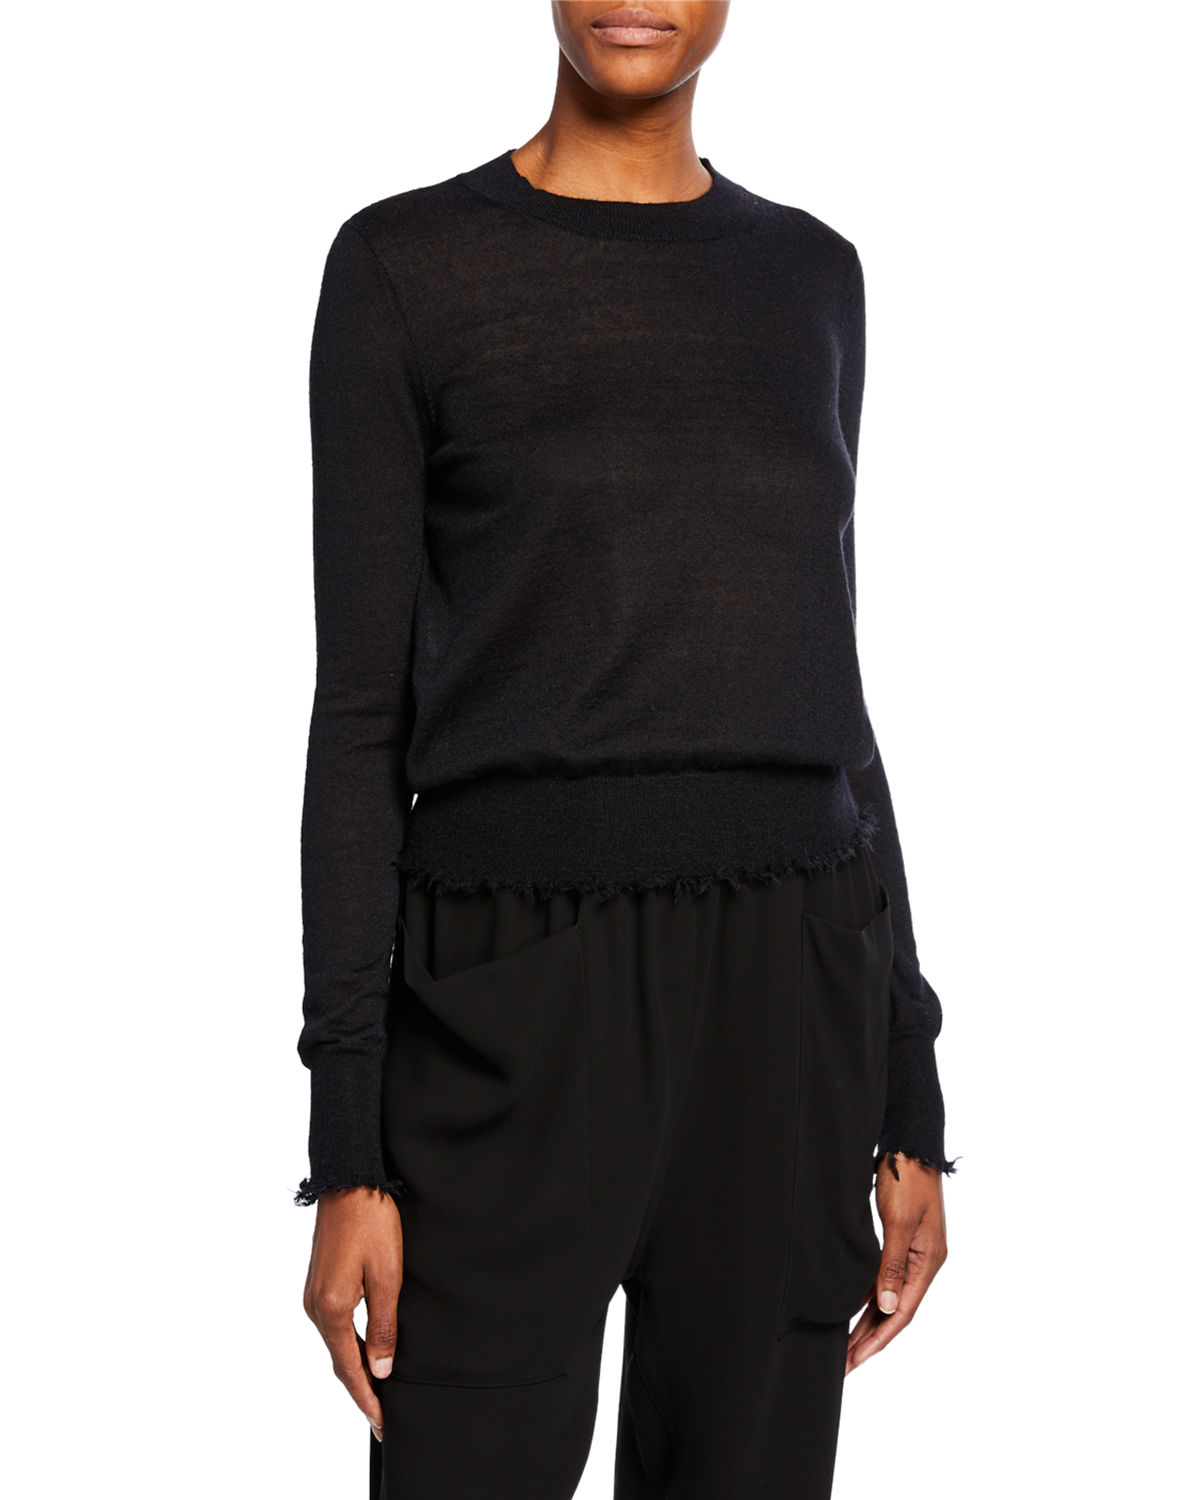 Co Sweaters FRAYED BATEAU NECK SWEATER